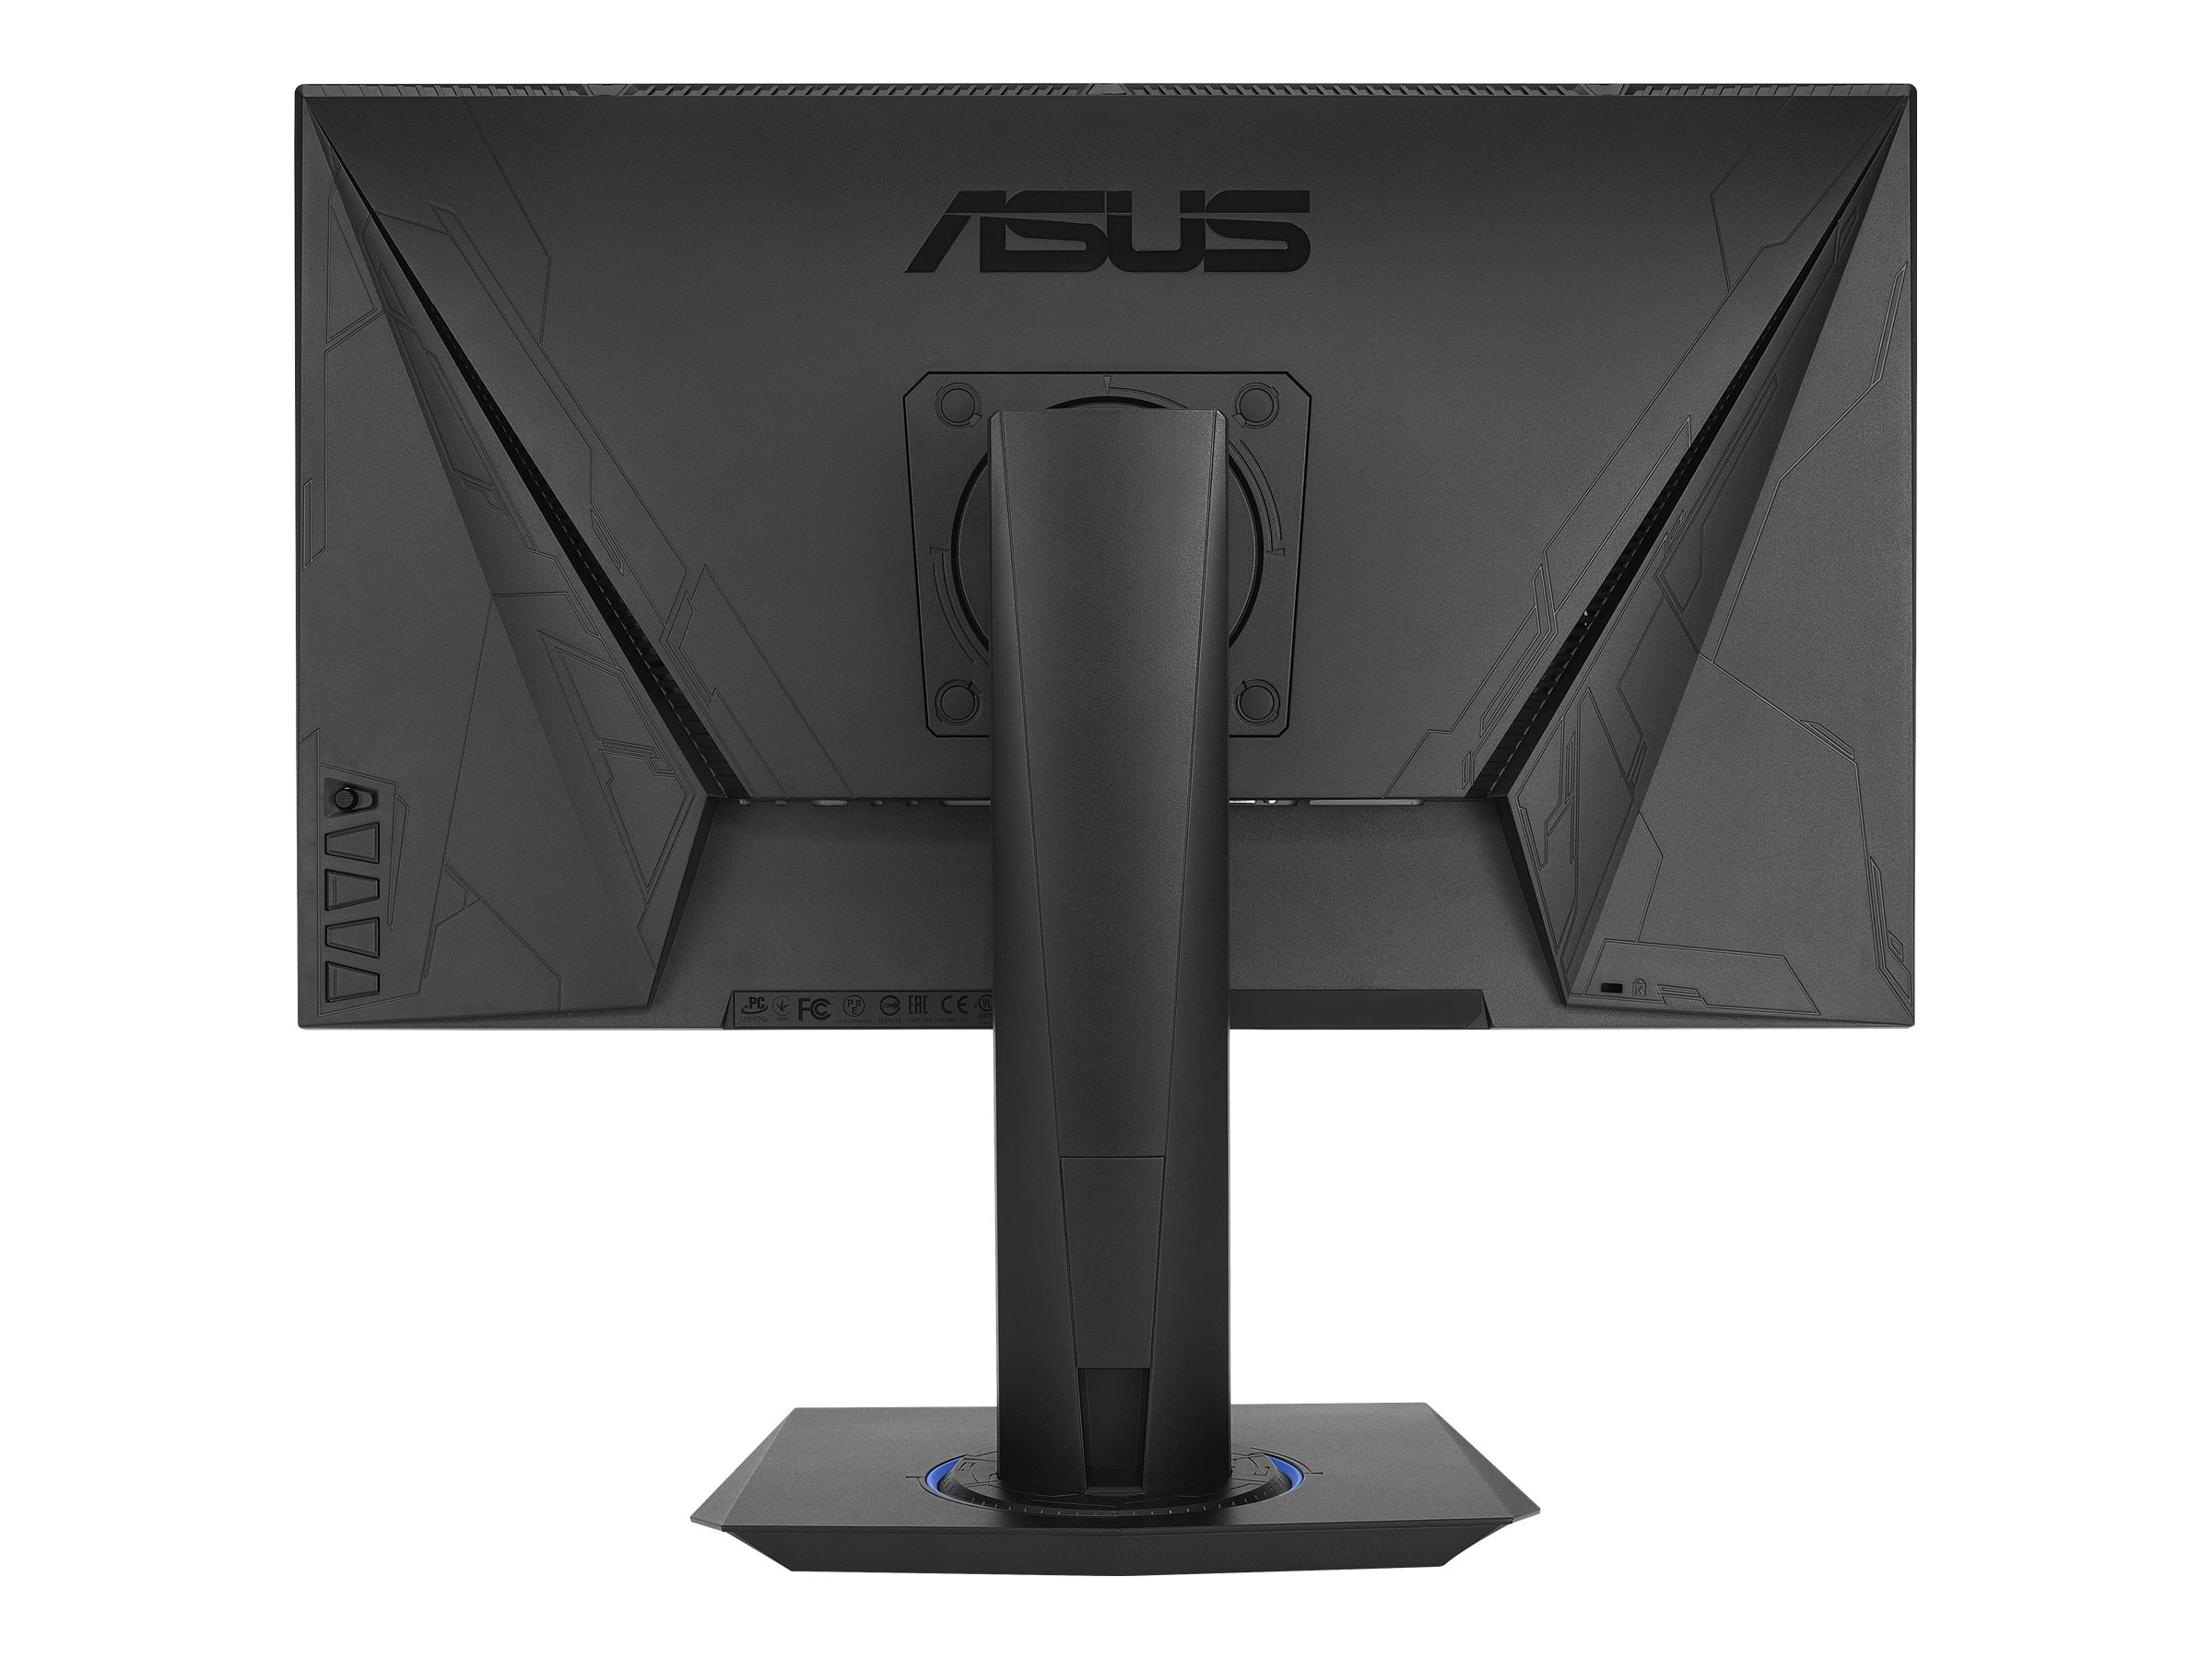 Asus 24 VG245H Full HD LED-LCD Monitor, Black, VG245H